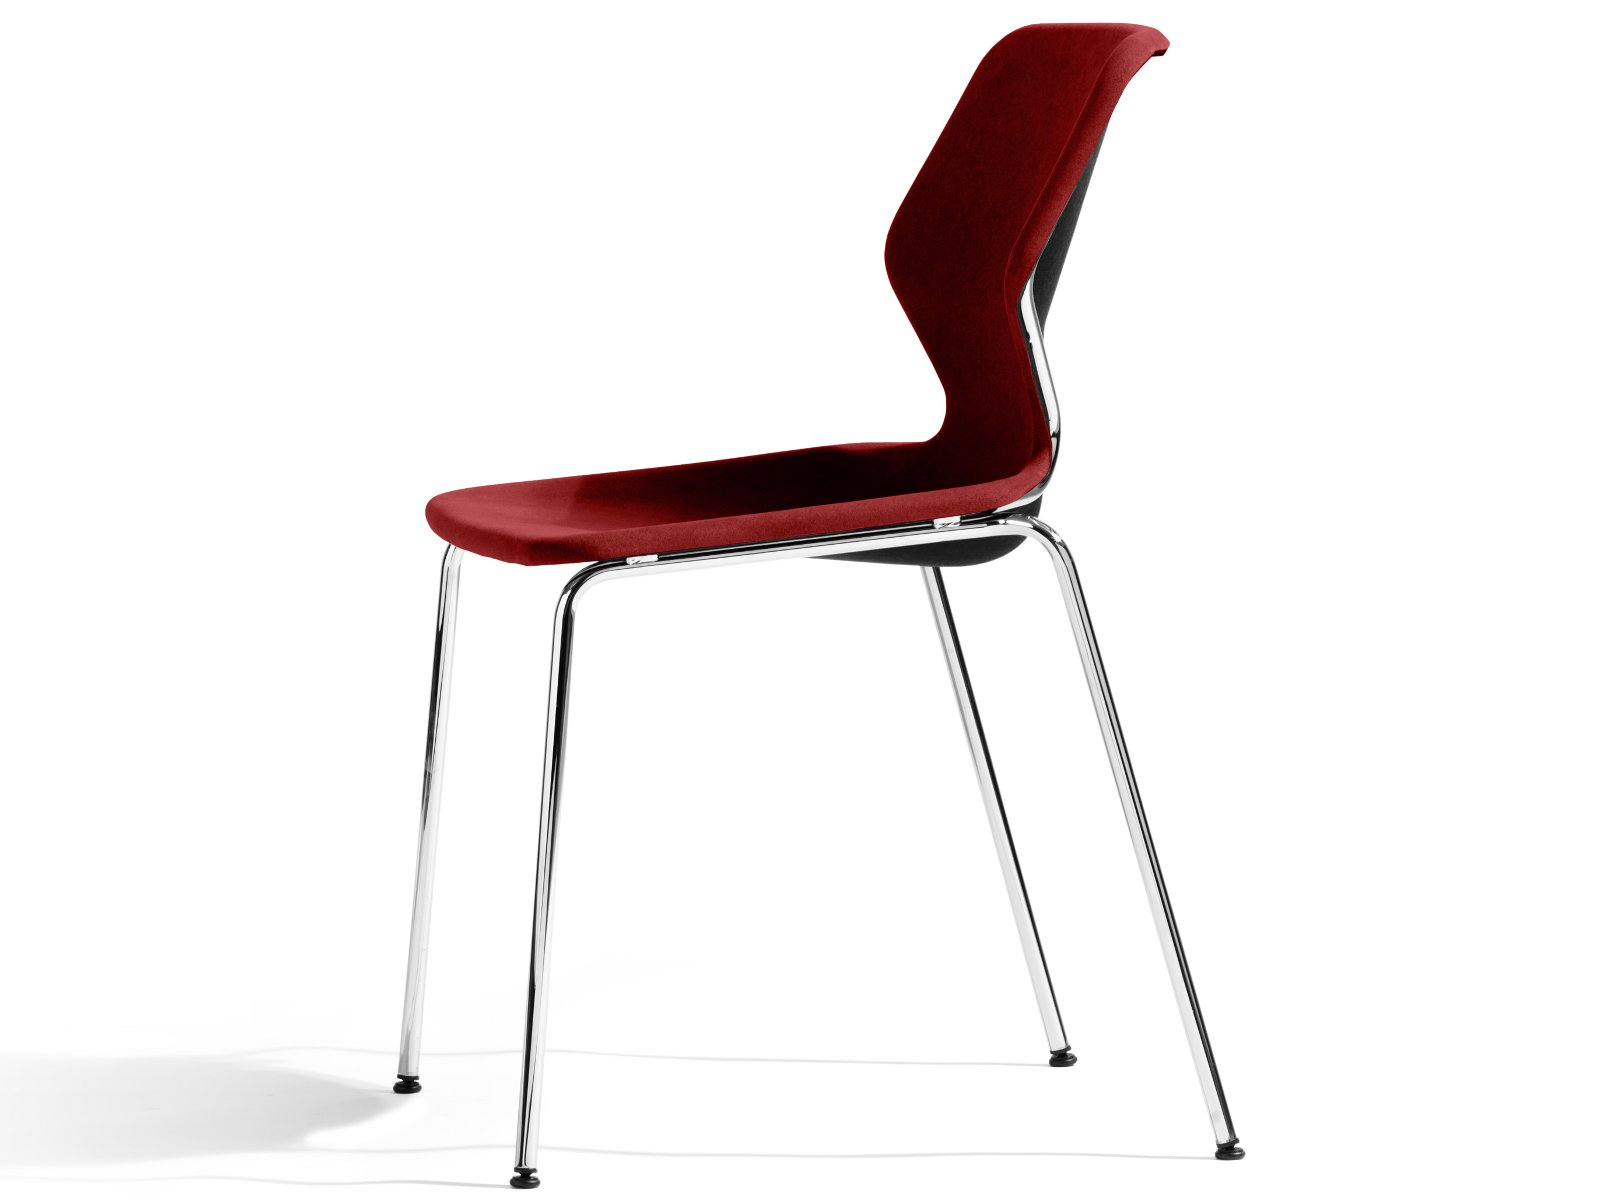 Boo chaise en tissu by bl station design stefan borselius - La chaise peekaboo par bla station ...